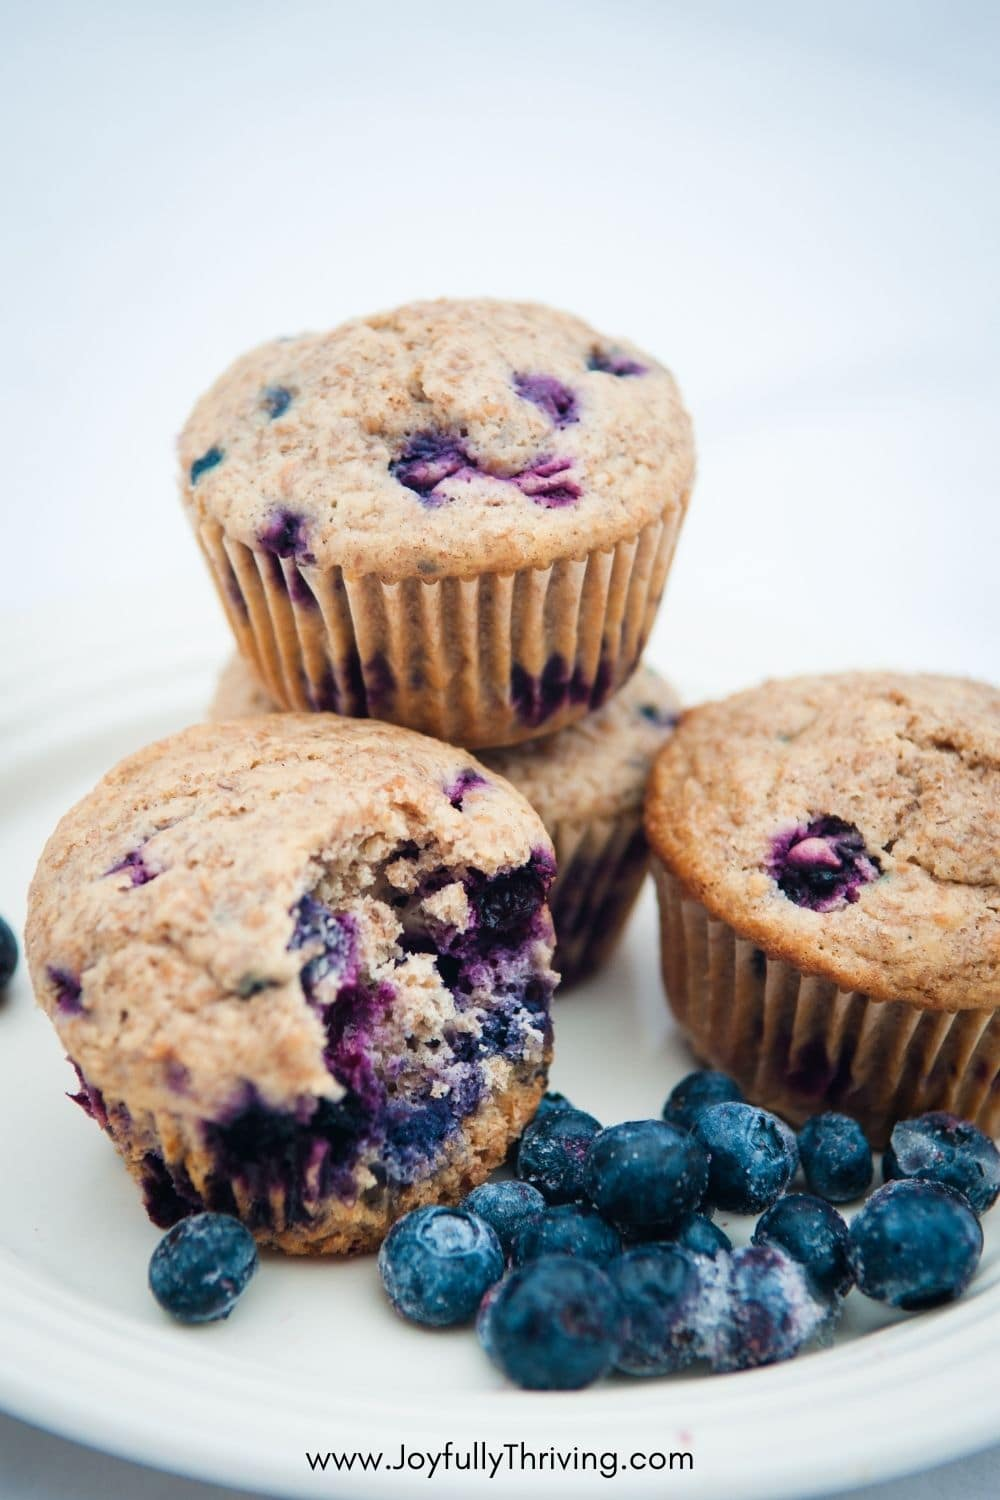 Blueberry muffins and frozen blueberries on a plate